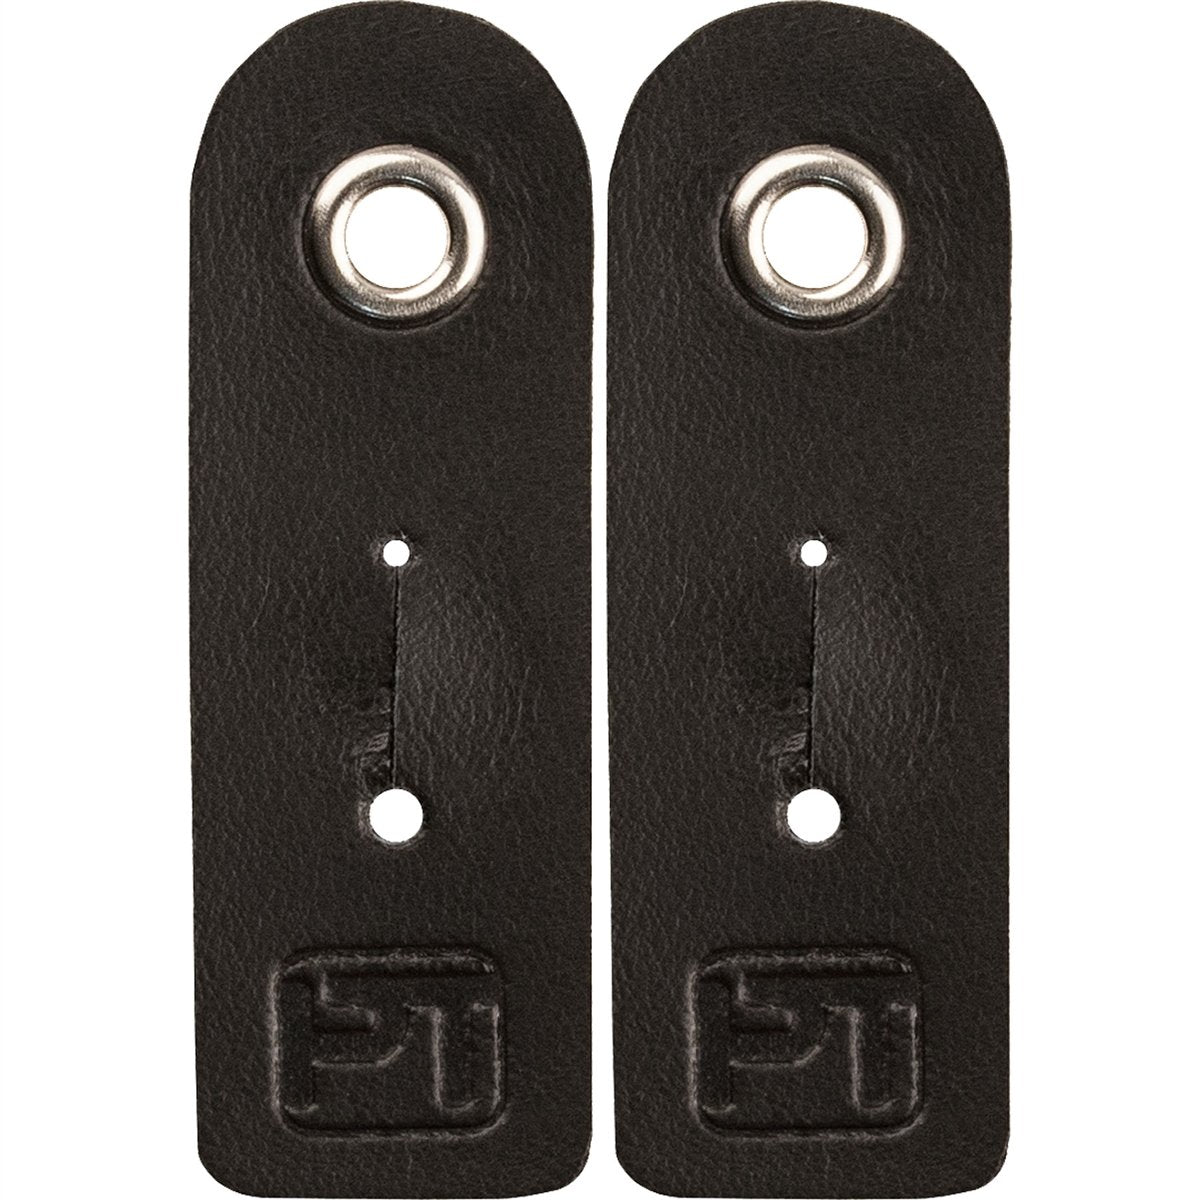 Protec - Replacement Leather Thumb Tabs (Pair) for Protec Clarinet Neck Strap-Accessories-Protec-Small-Music Elements